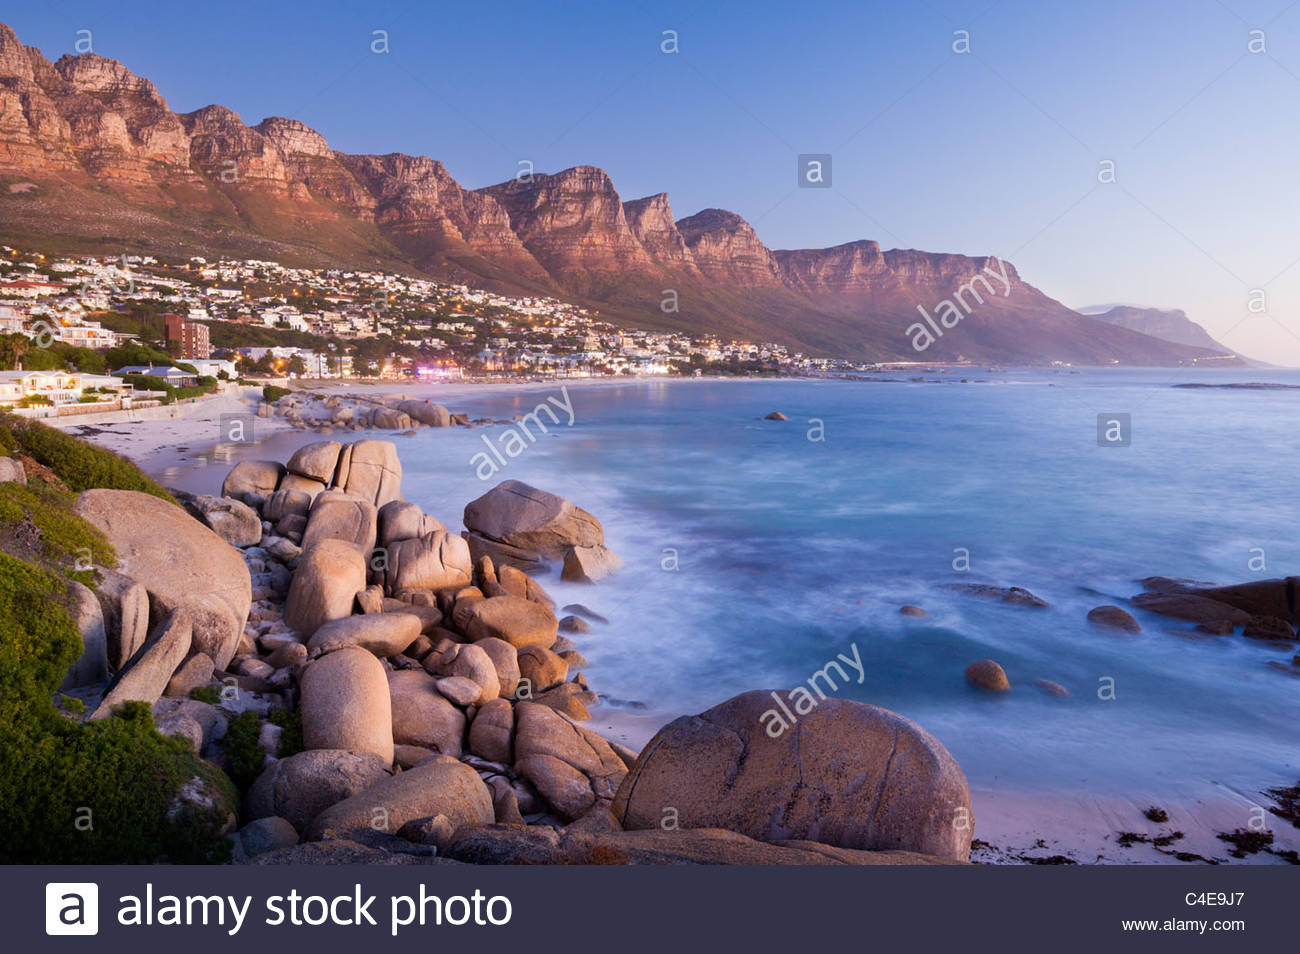 The Twelve Apostles loom over Camps Bay, near Cape Town, South Africa. - Stock Image